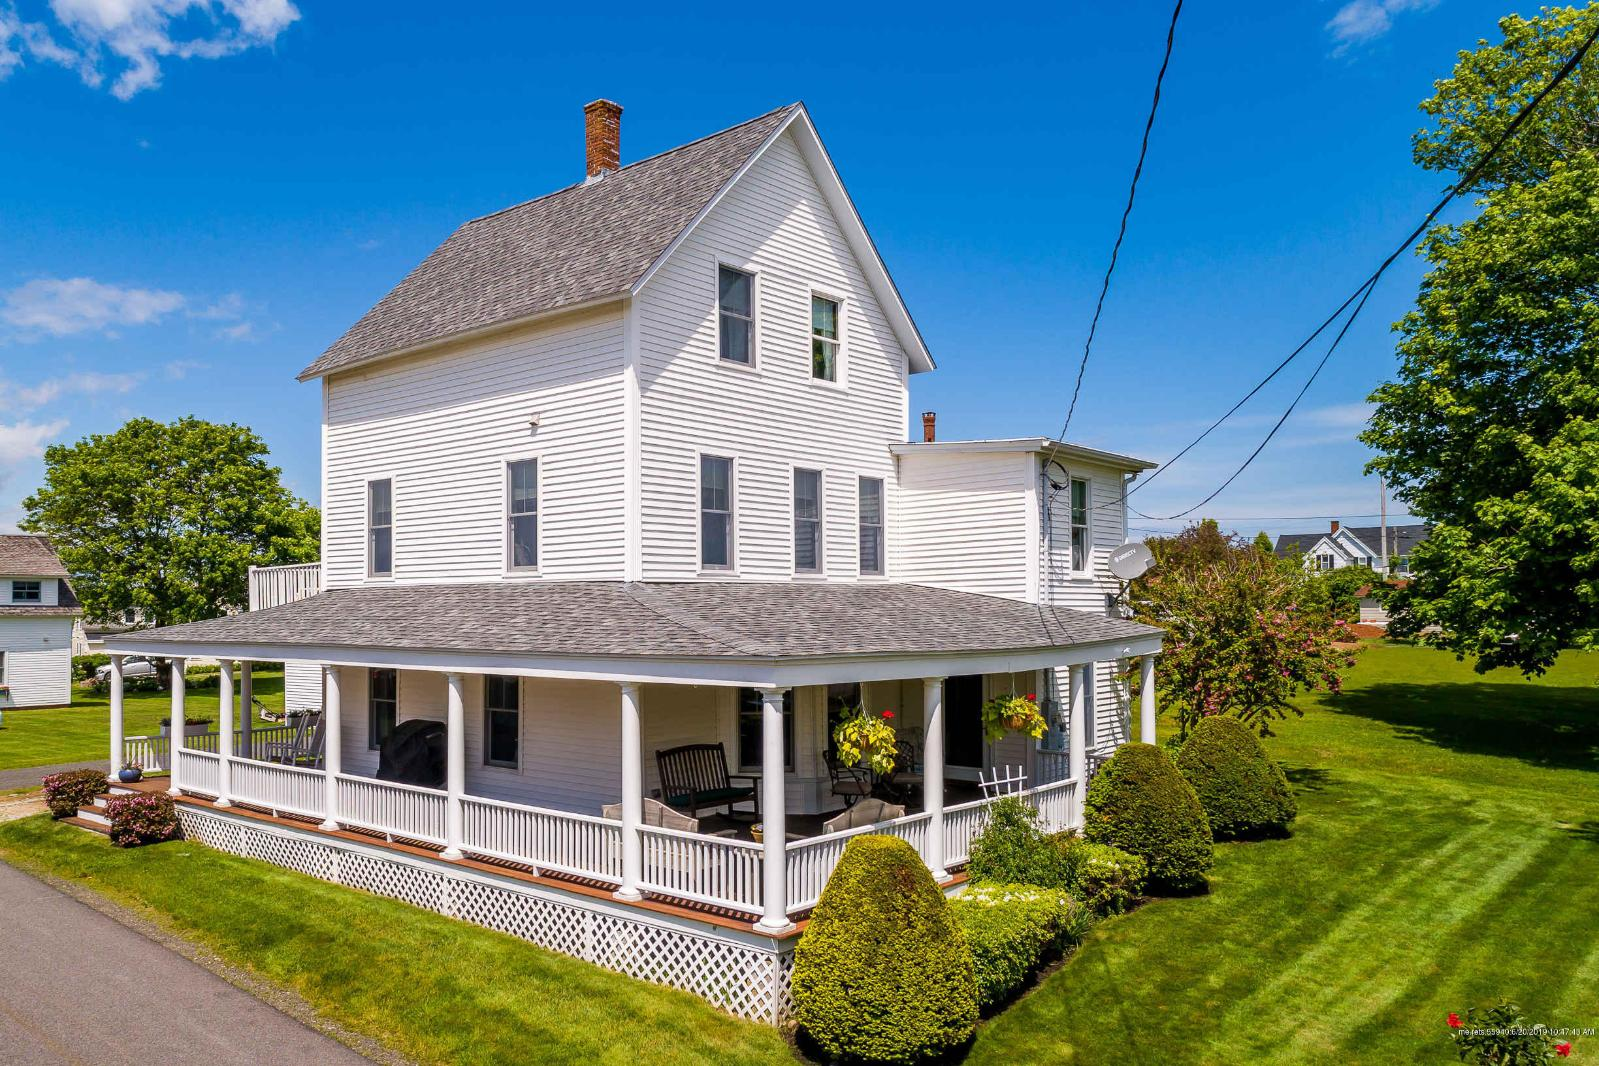 Local Real Estate: Homes for Sale — York, ME — Coldwell Banker